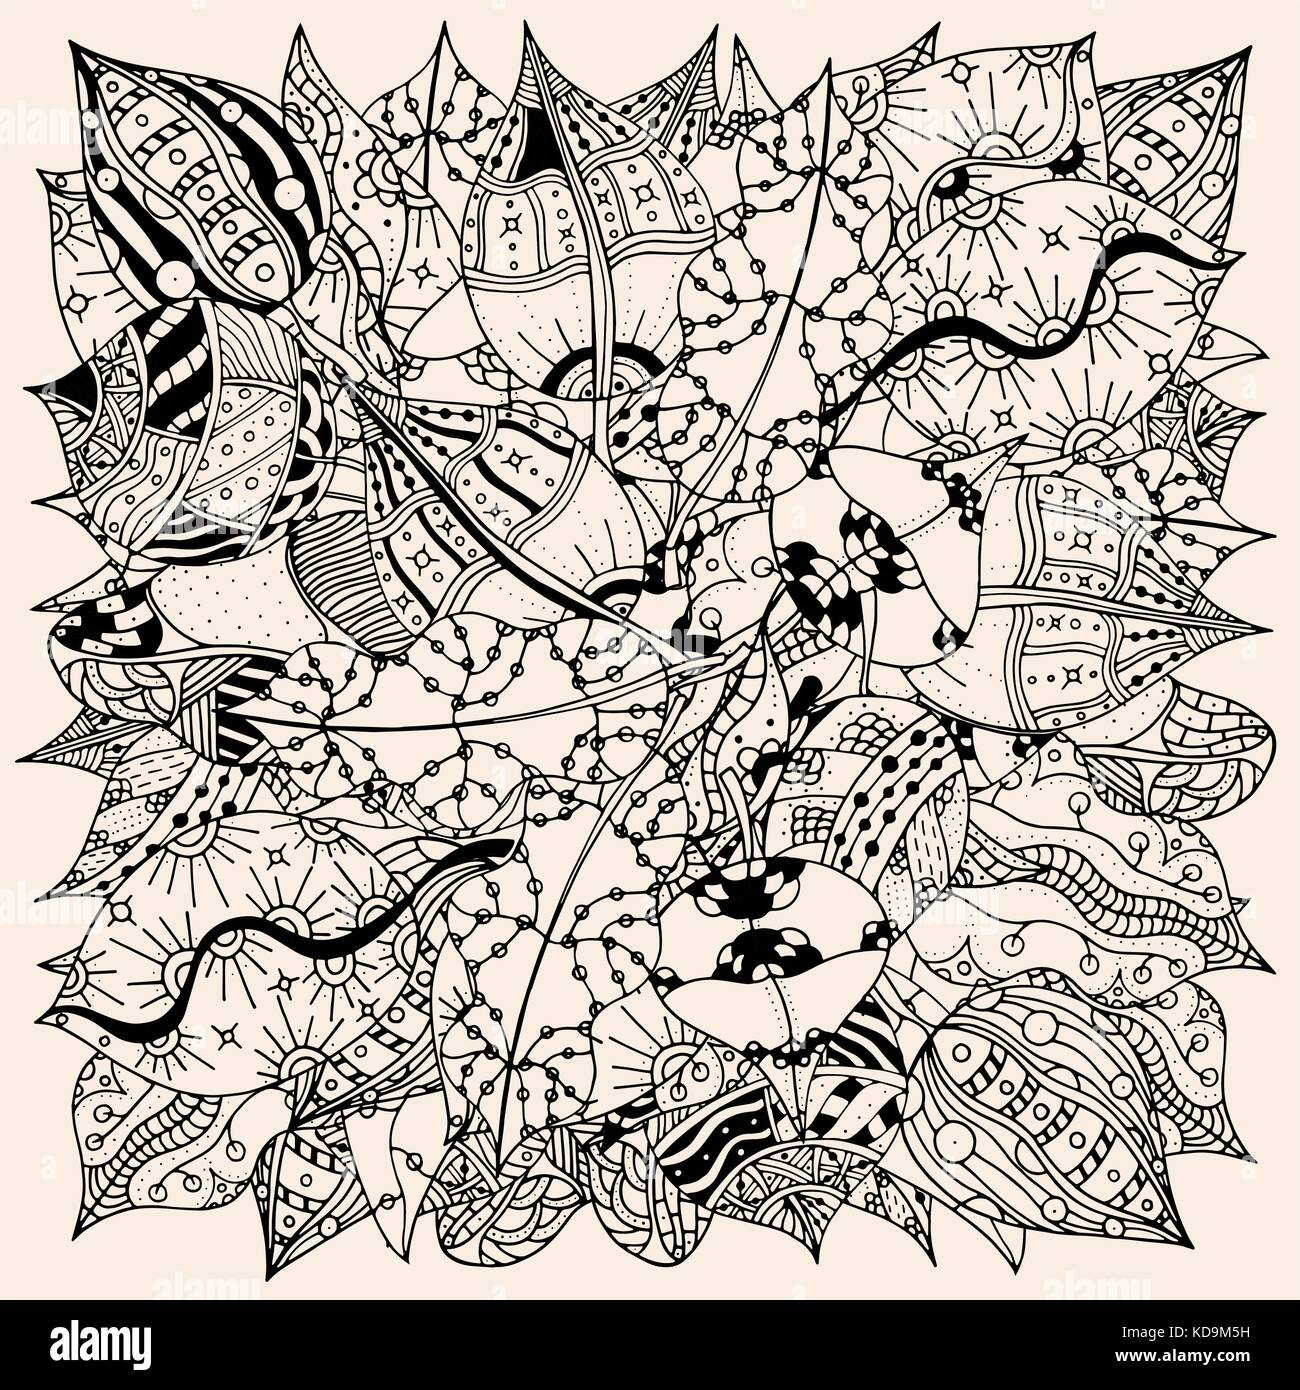 Pattern For Coloring Book With Autumn Leaves Ethnic Floral Retro Doodle